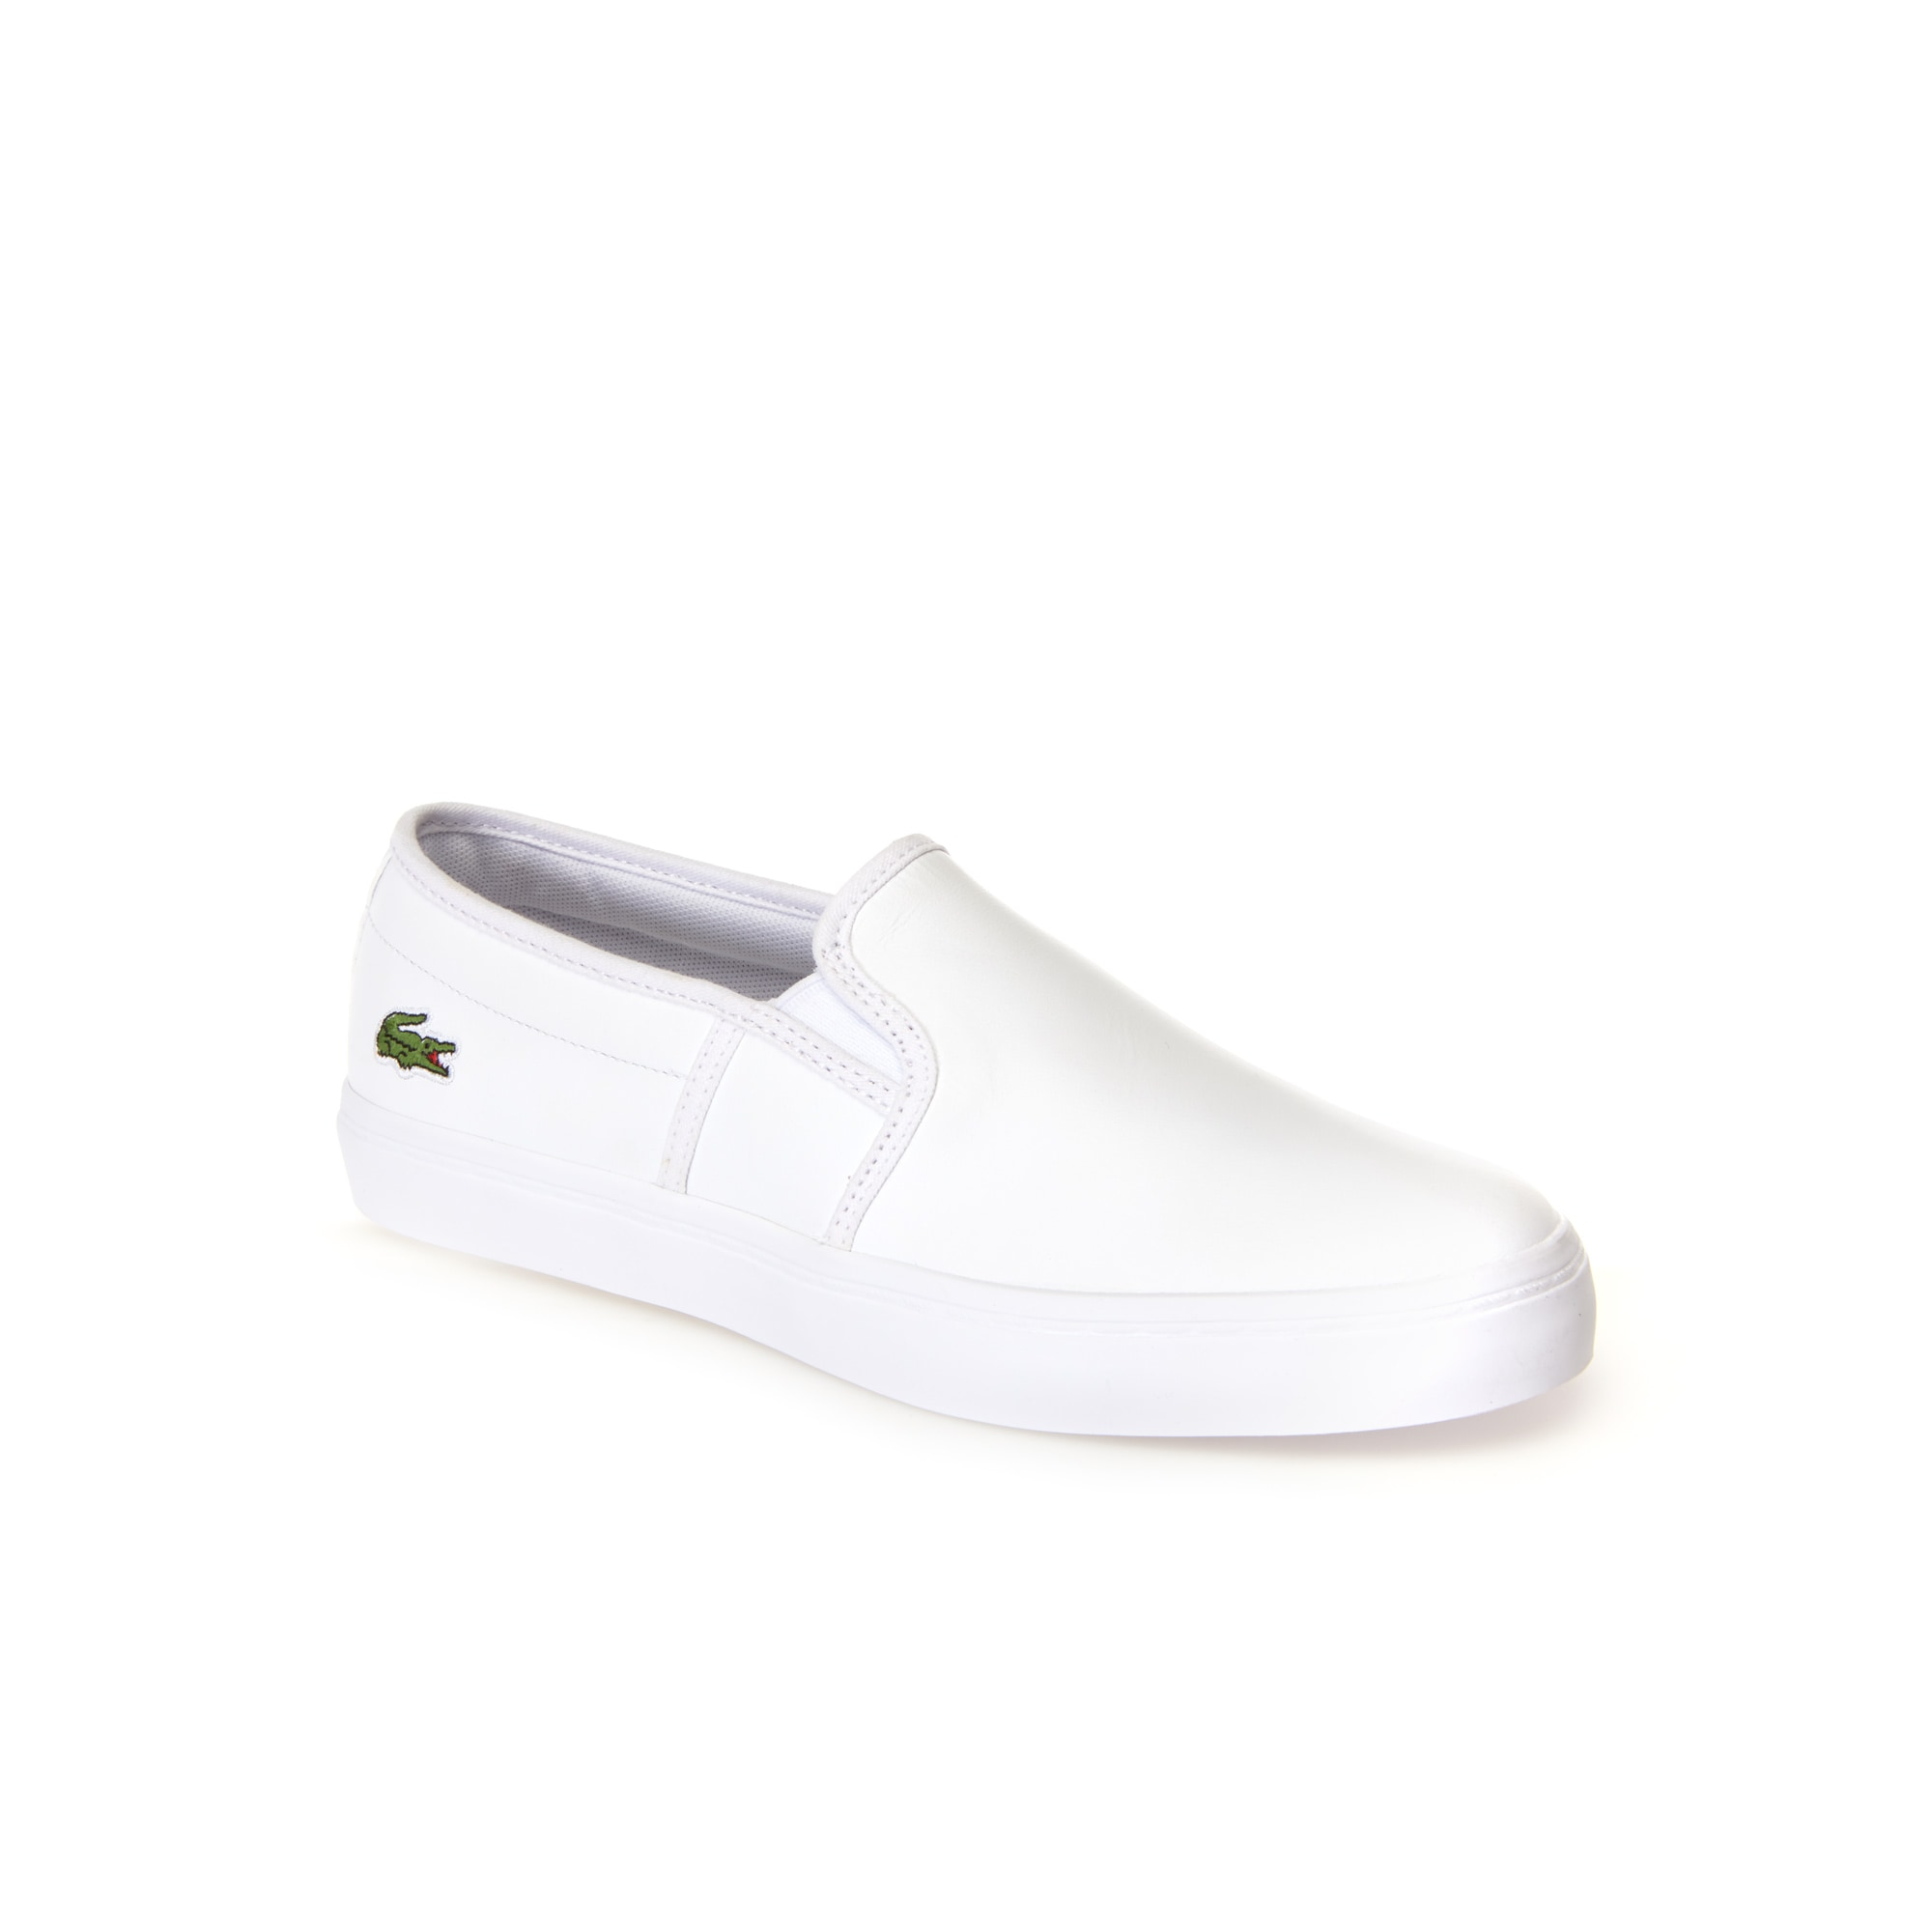 68fd0566c4 Chaussures femme | Collection Femme | LACOSTE